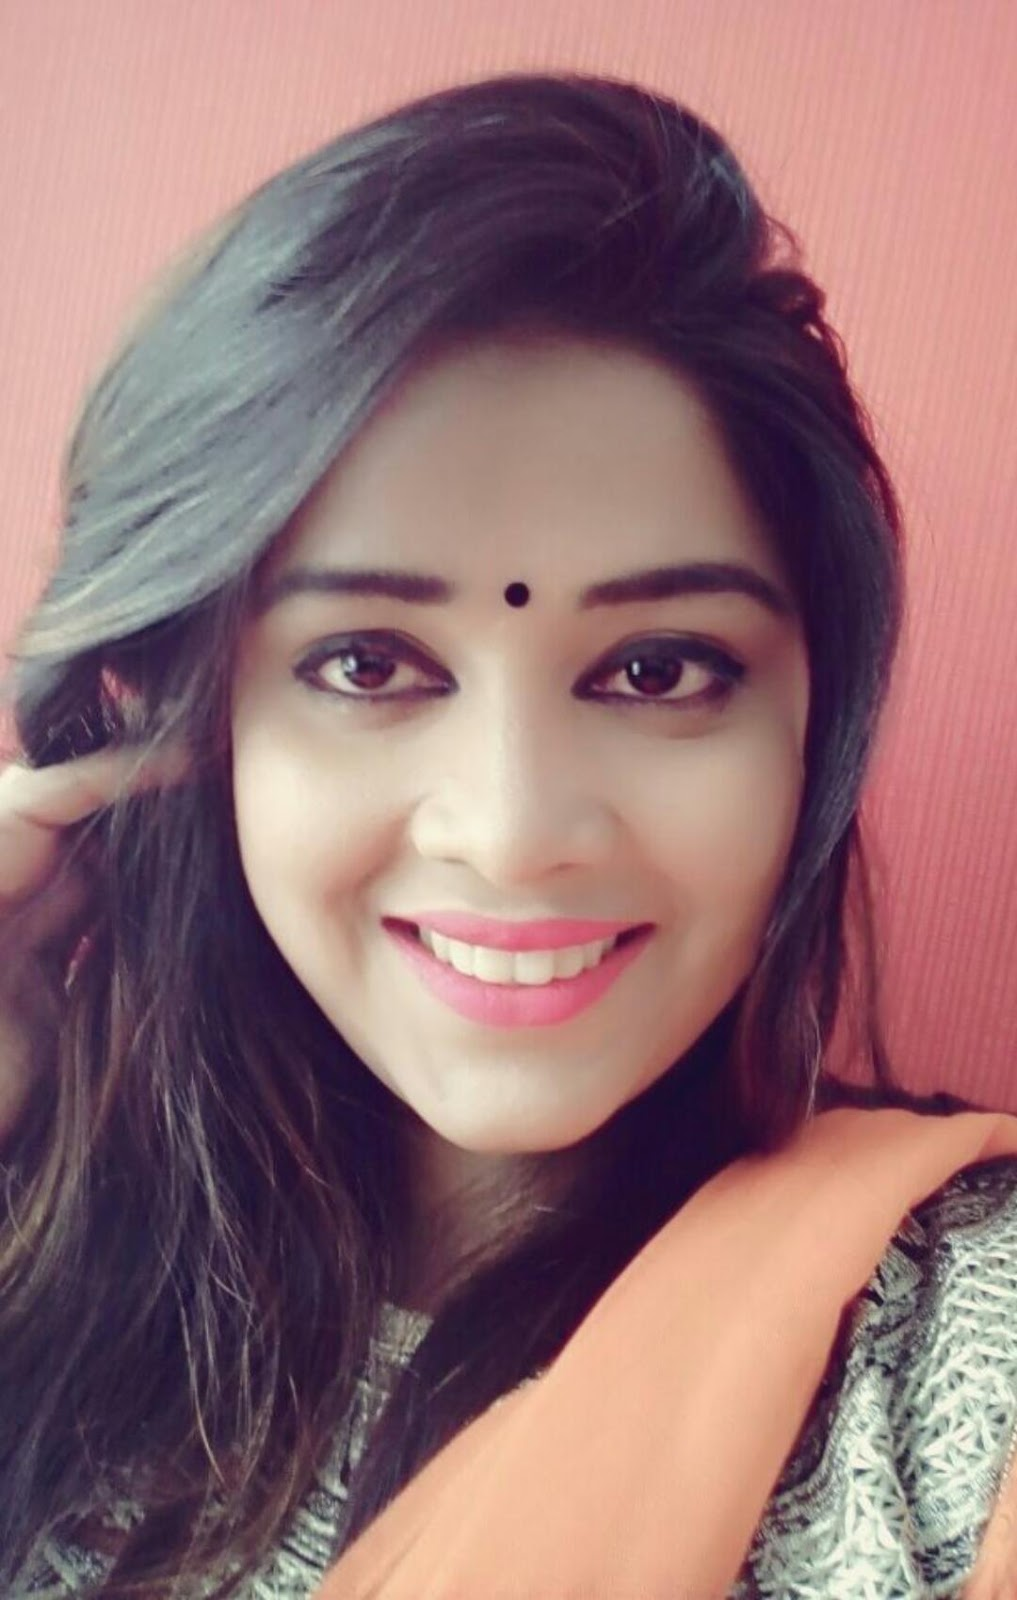 Eenu Shree biography wikipedia, Bhojpuri actress Eenu Shree date of birthday, Eenu Shree upcoming movies info, Check out Eenu Shree's Latest filmography, photo, Images, Wallpaper